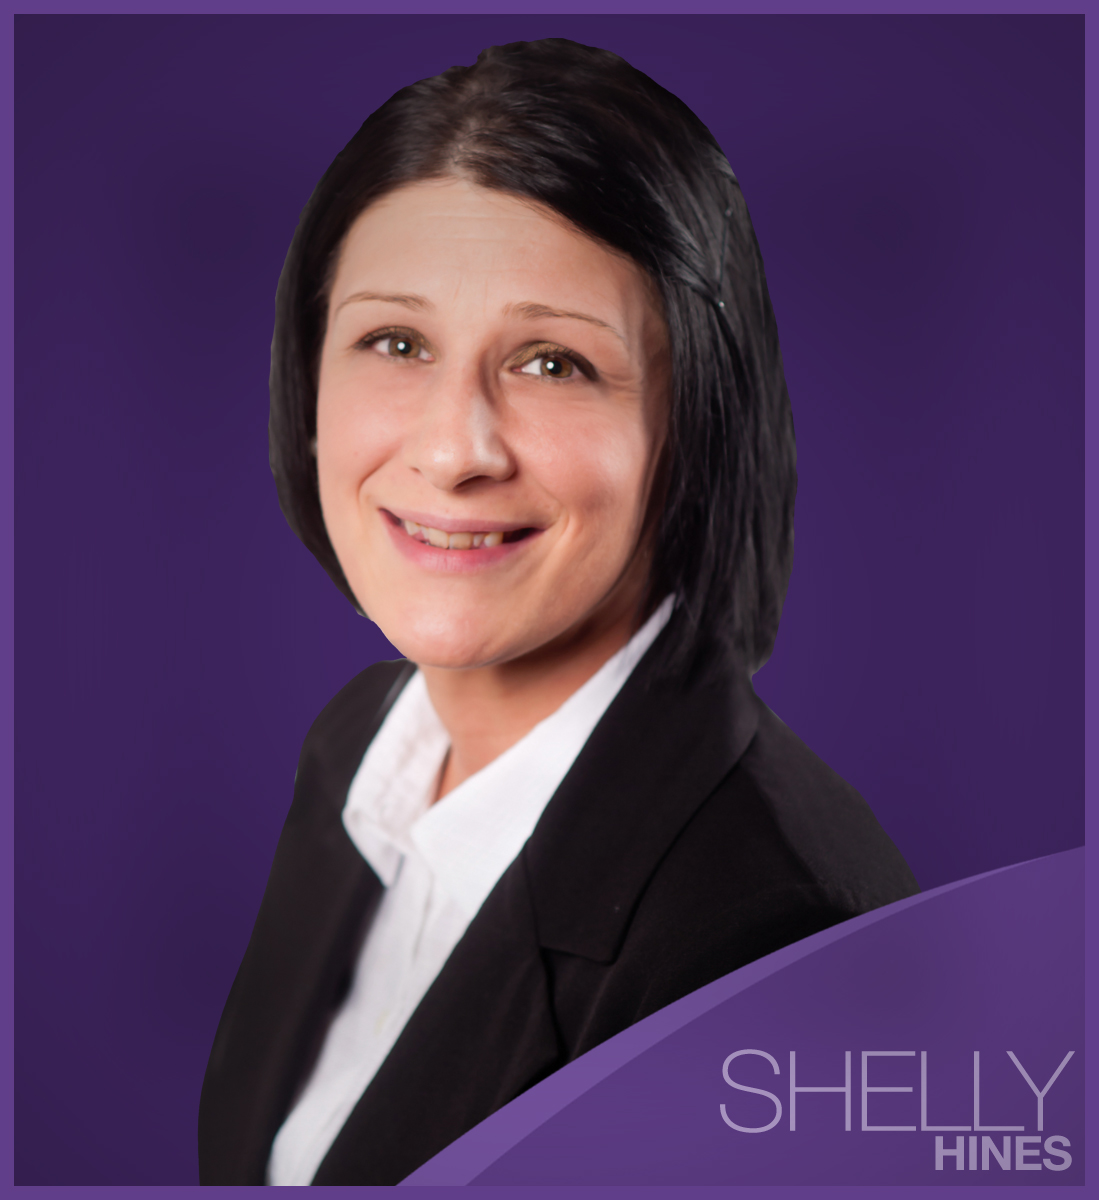 Shelly Hines